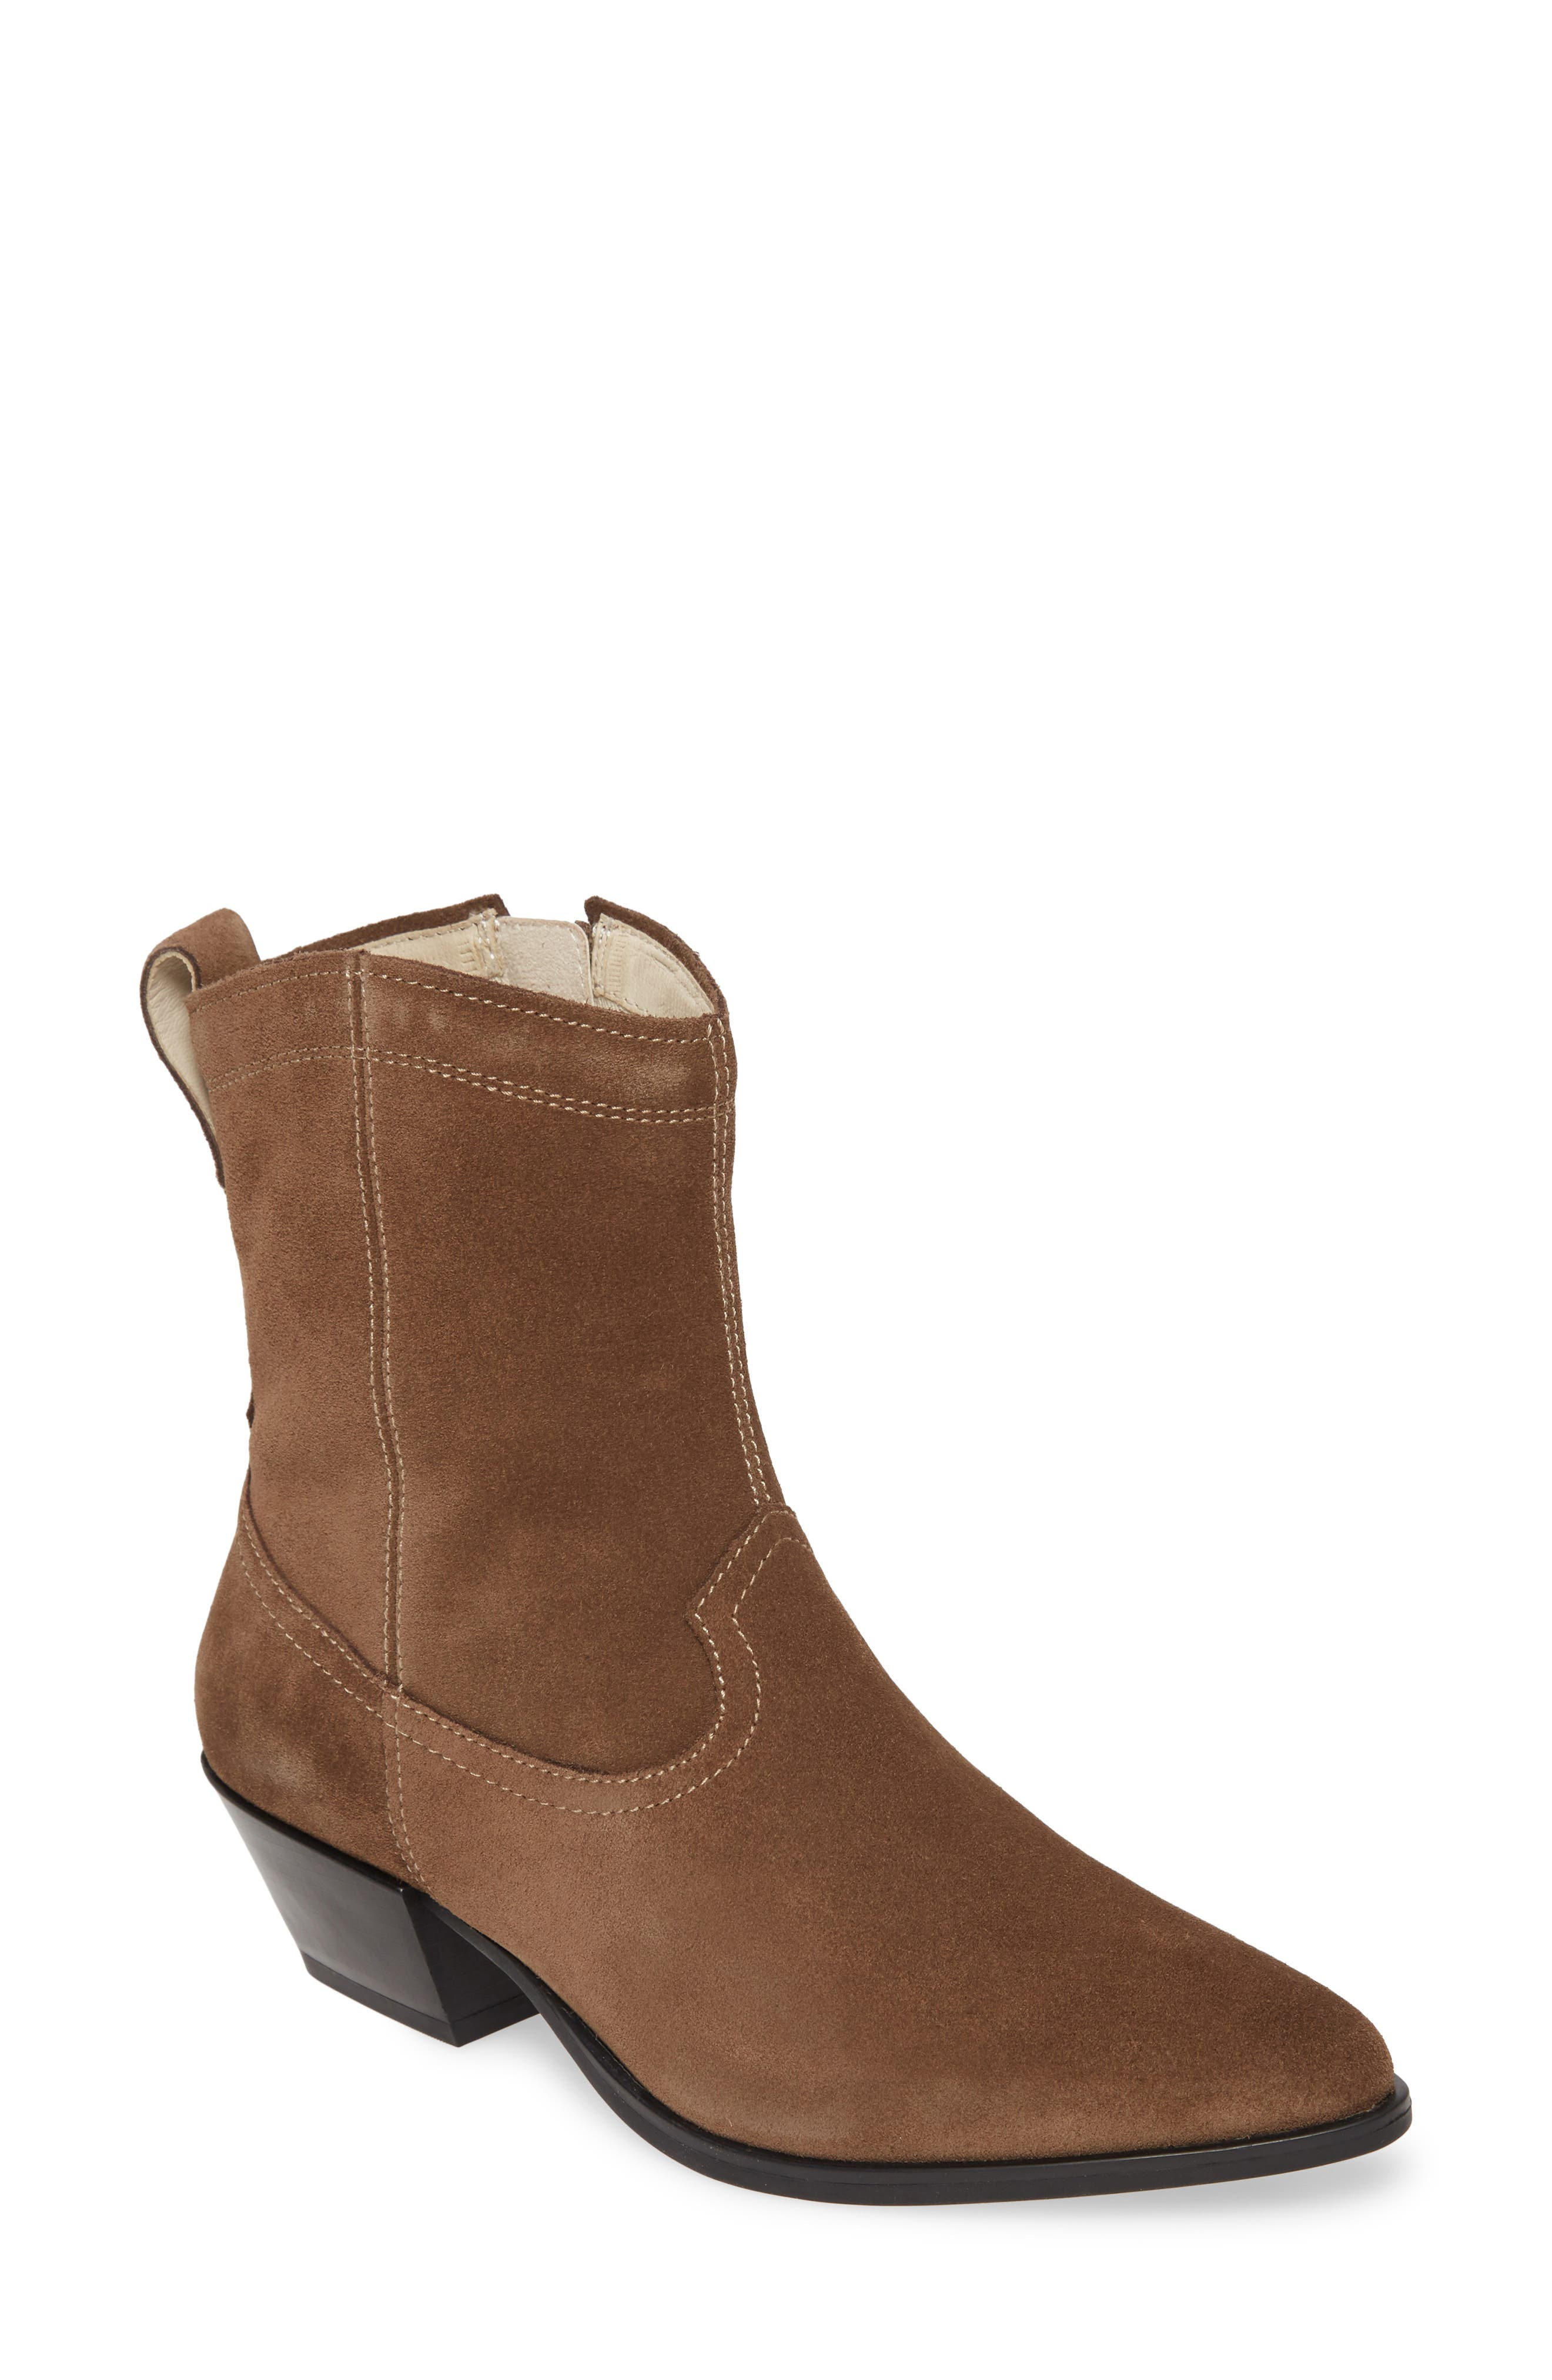 Womens Vagabond Emily Western Block Heels Taupe Suede Boots